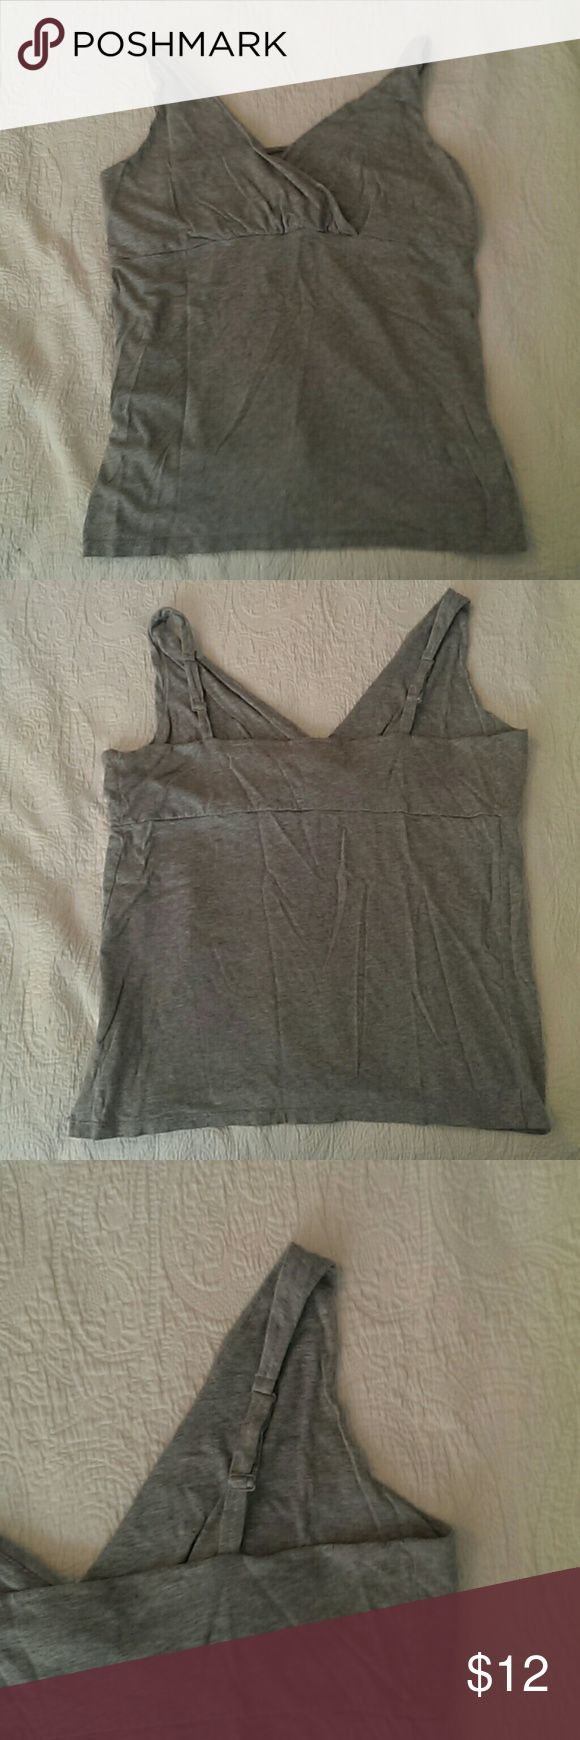 BOGO! Old Navy XL crossover front maternity cami Heather gray crossover front cami. Old Navy maternity XL. Runs larger, like most Old Navy maternity clothes. Can also be used as a nursing top.  Offers and questions encouraged! Old Navy Tops Camisoles